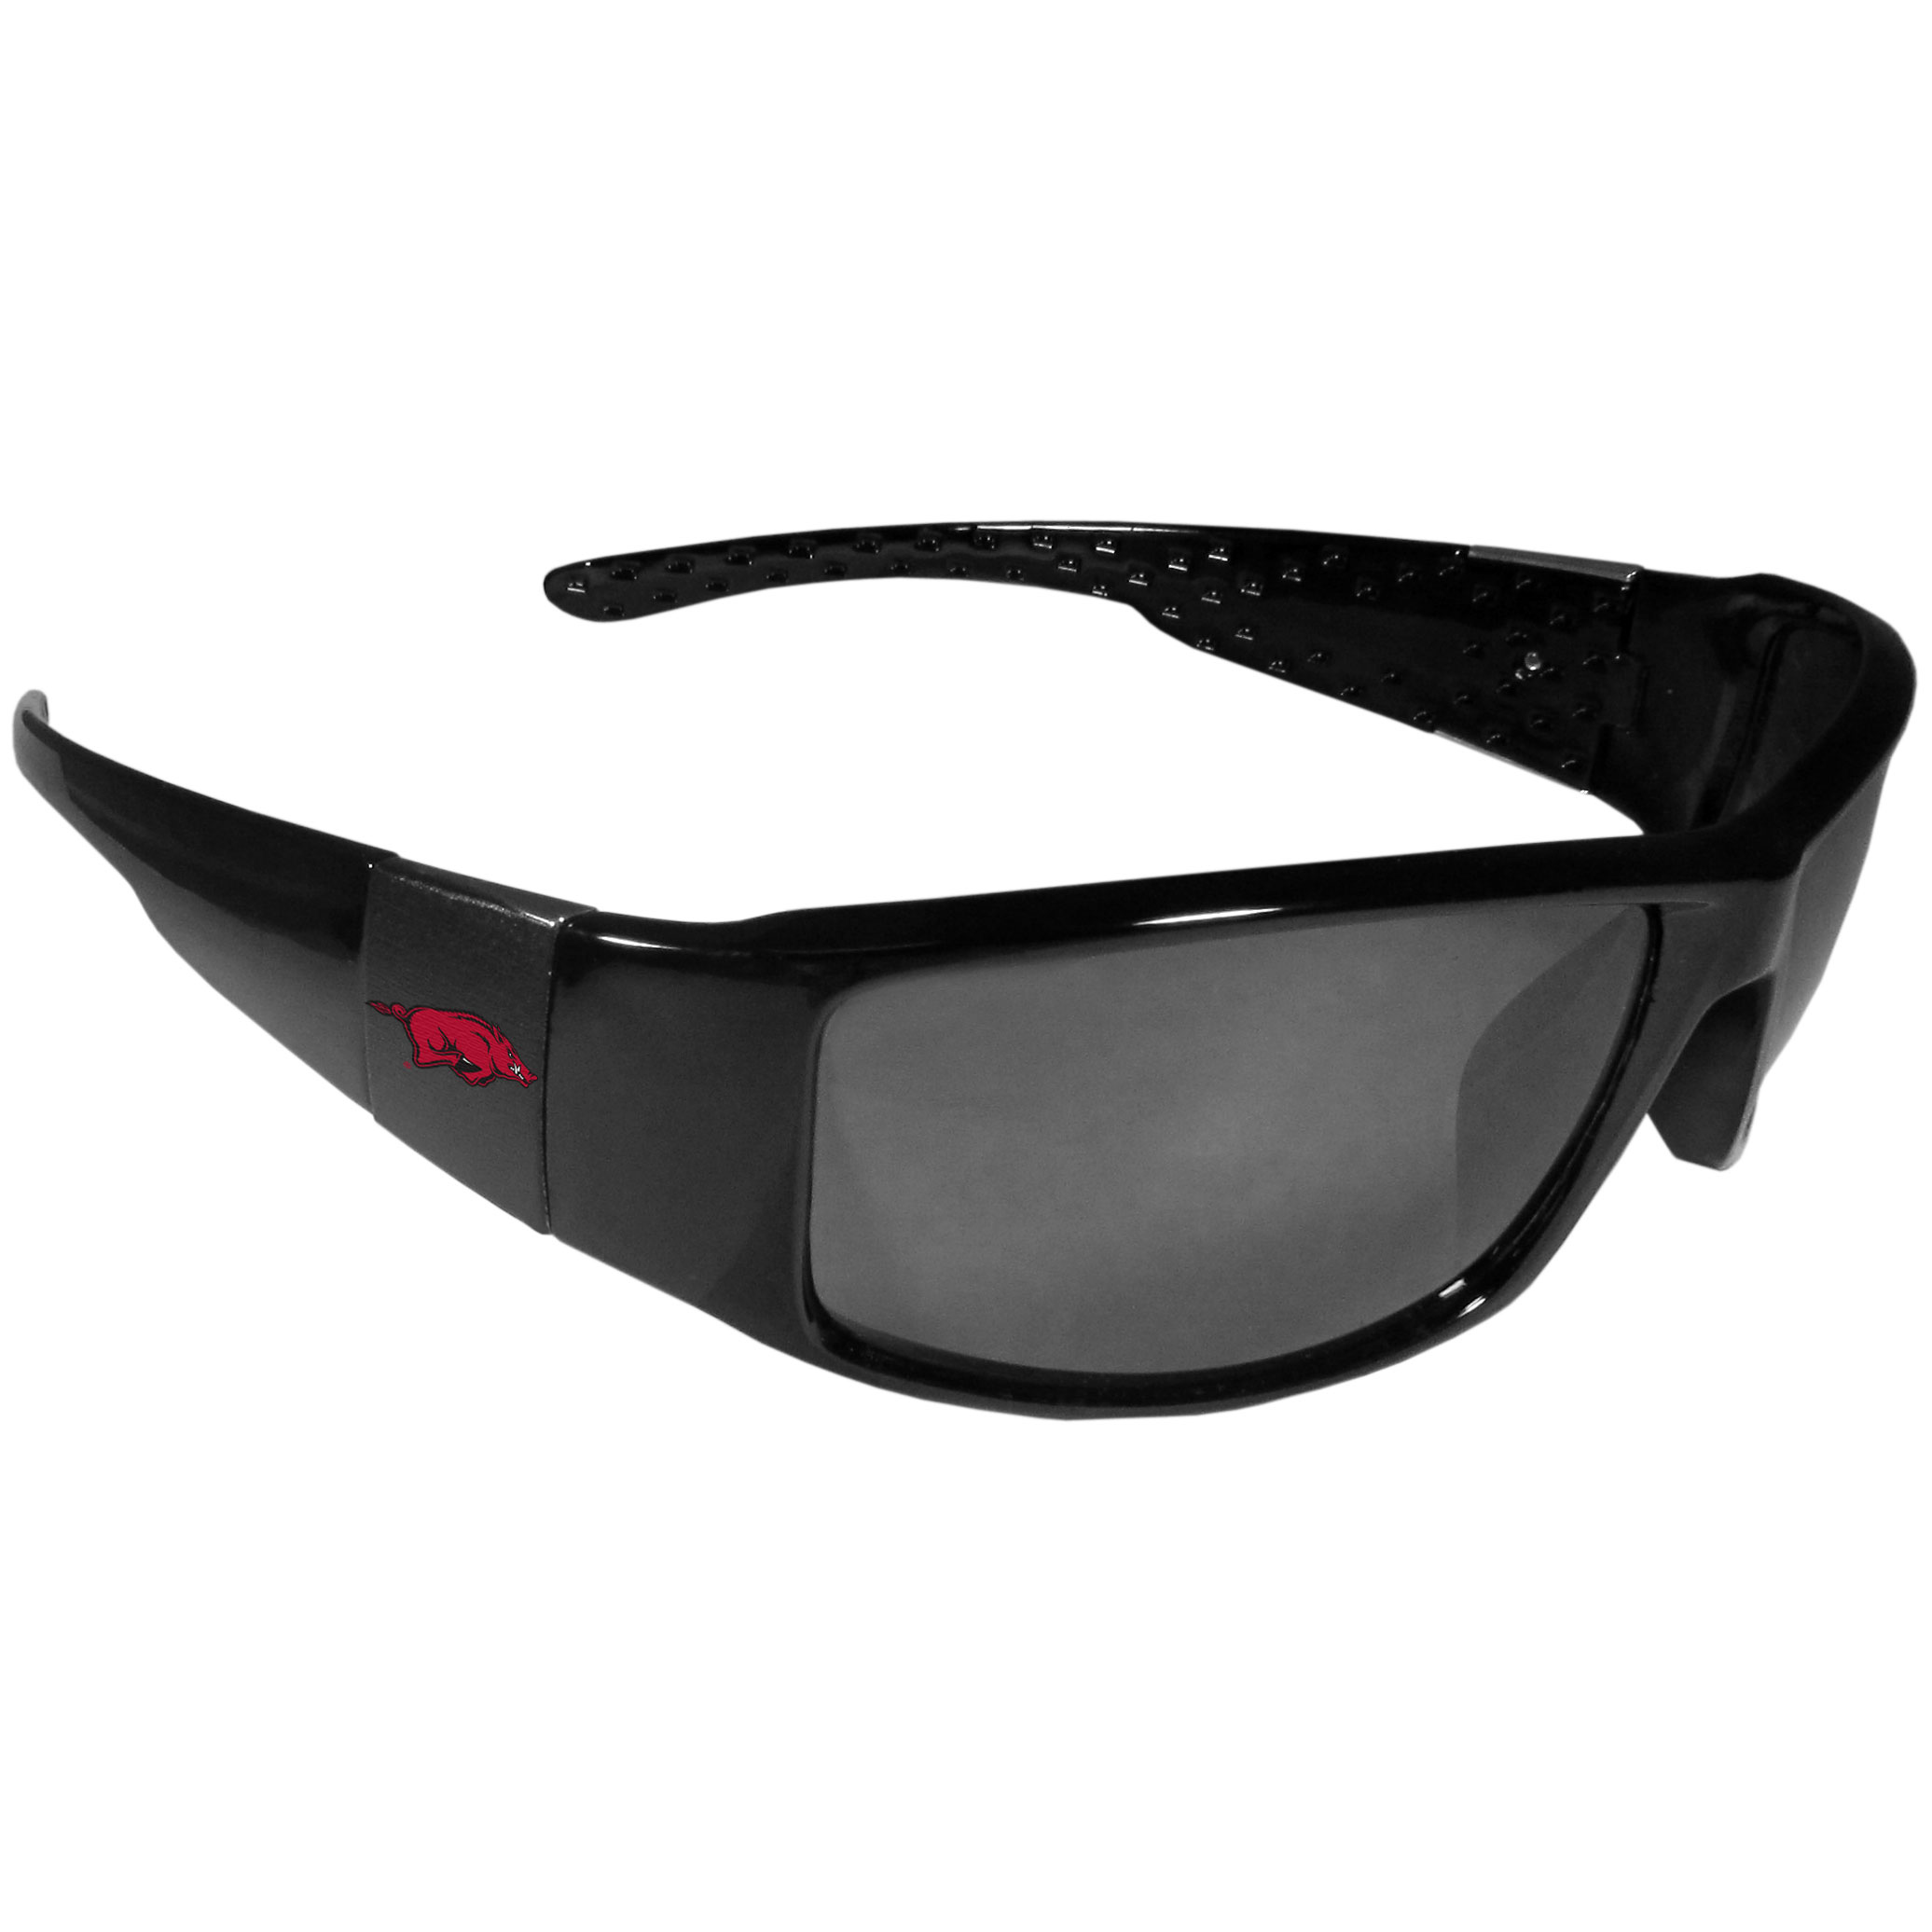 Arkansas Razorbacks Black Wrap Sunglasses - These designer inspired frames have a sleek look in all black with  Arkansas Razorbacks shields on each arm with a printed logo. The shades are perfect for any outdoor activity like; golfing, driving, hiking, fishing or cheering on the team at a tailgating event or at a home game day BBQ with a lens rating of 100% UVA/UVB for maximum UV protection. The high-quality frames are as durable as they are fashionable and with their classic look they are the perfect fan accessory that can be worn everyday for every occasion.